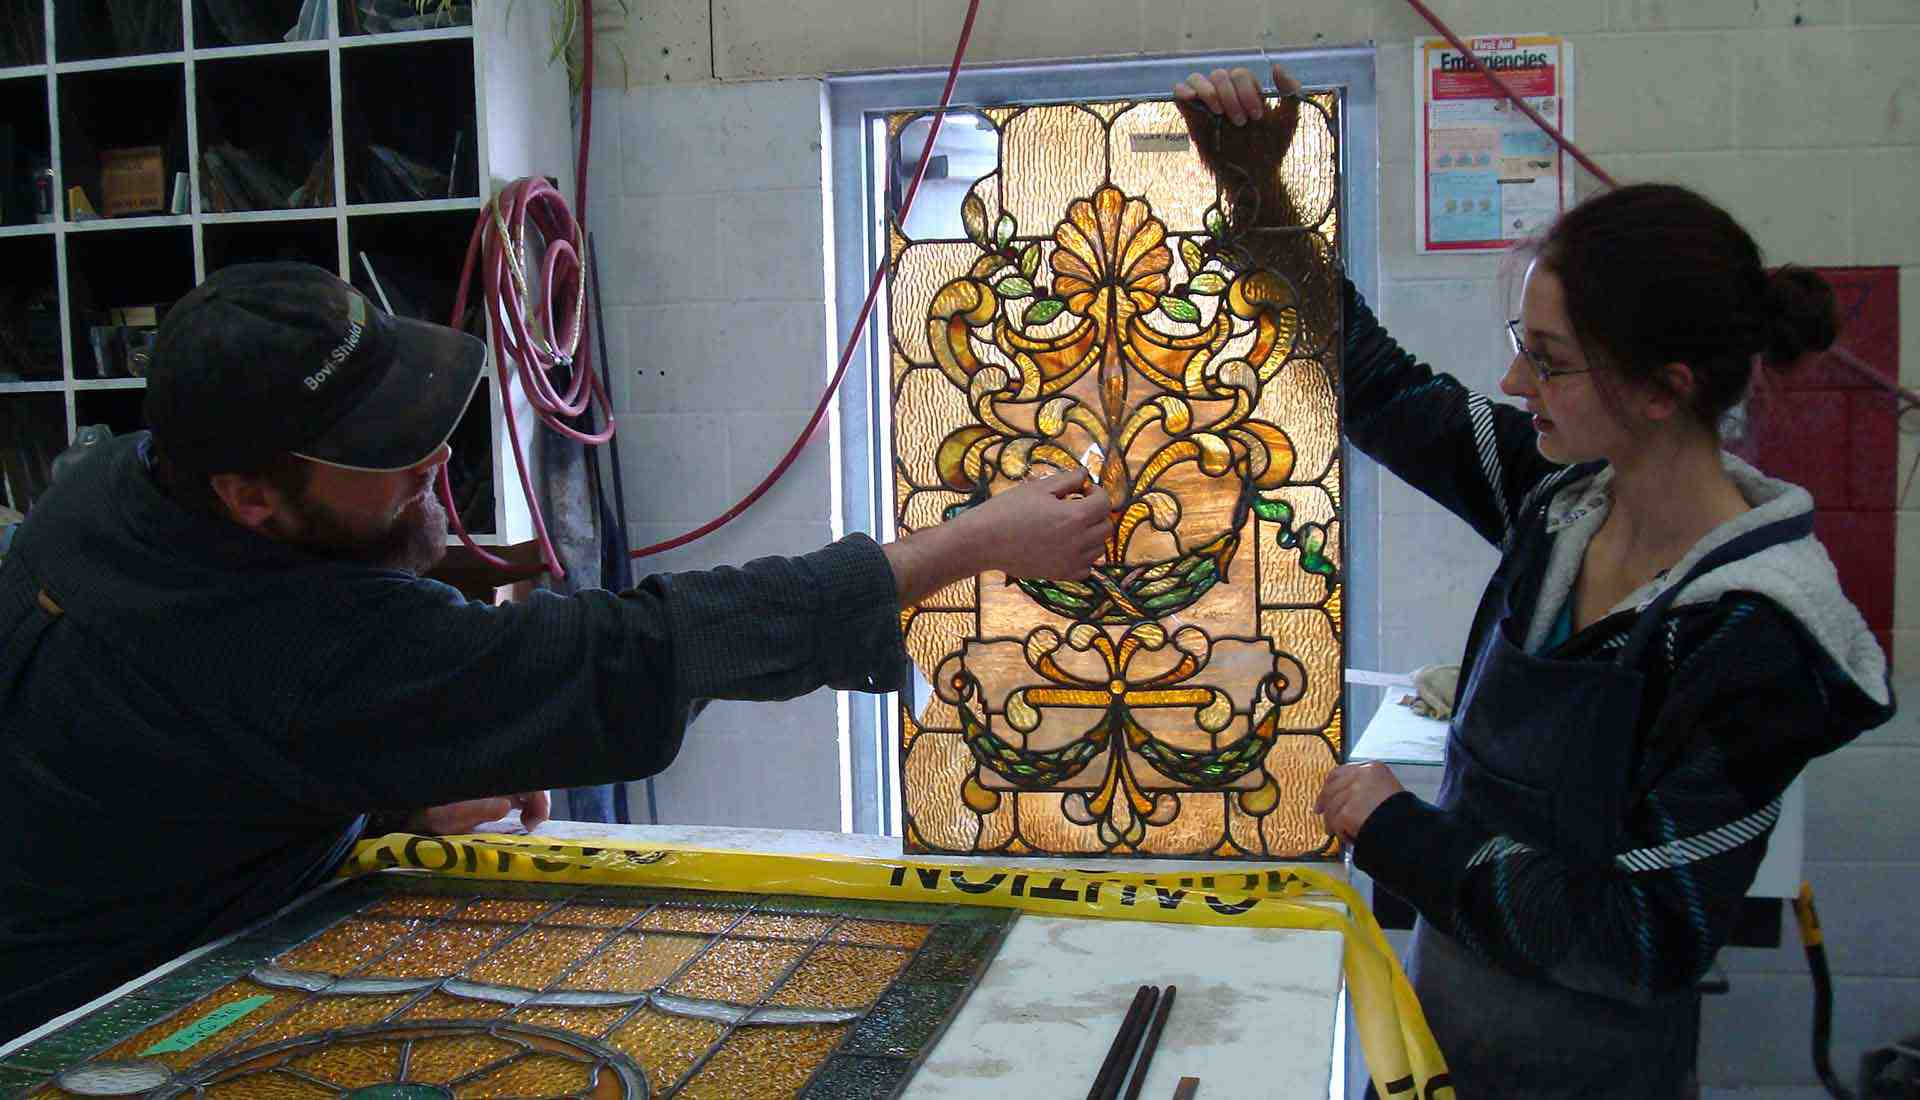 Restoring the stained-glass windows at Fulford Place, Brockville